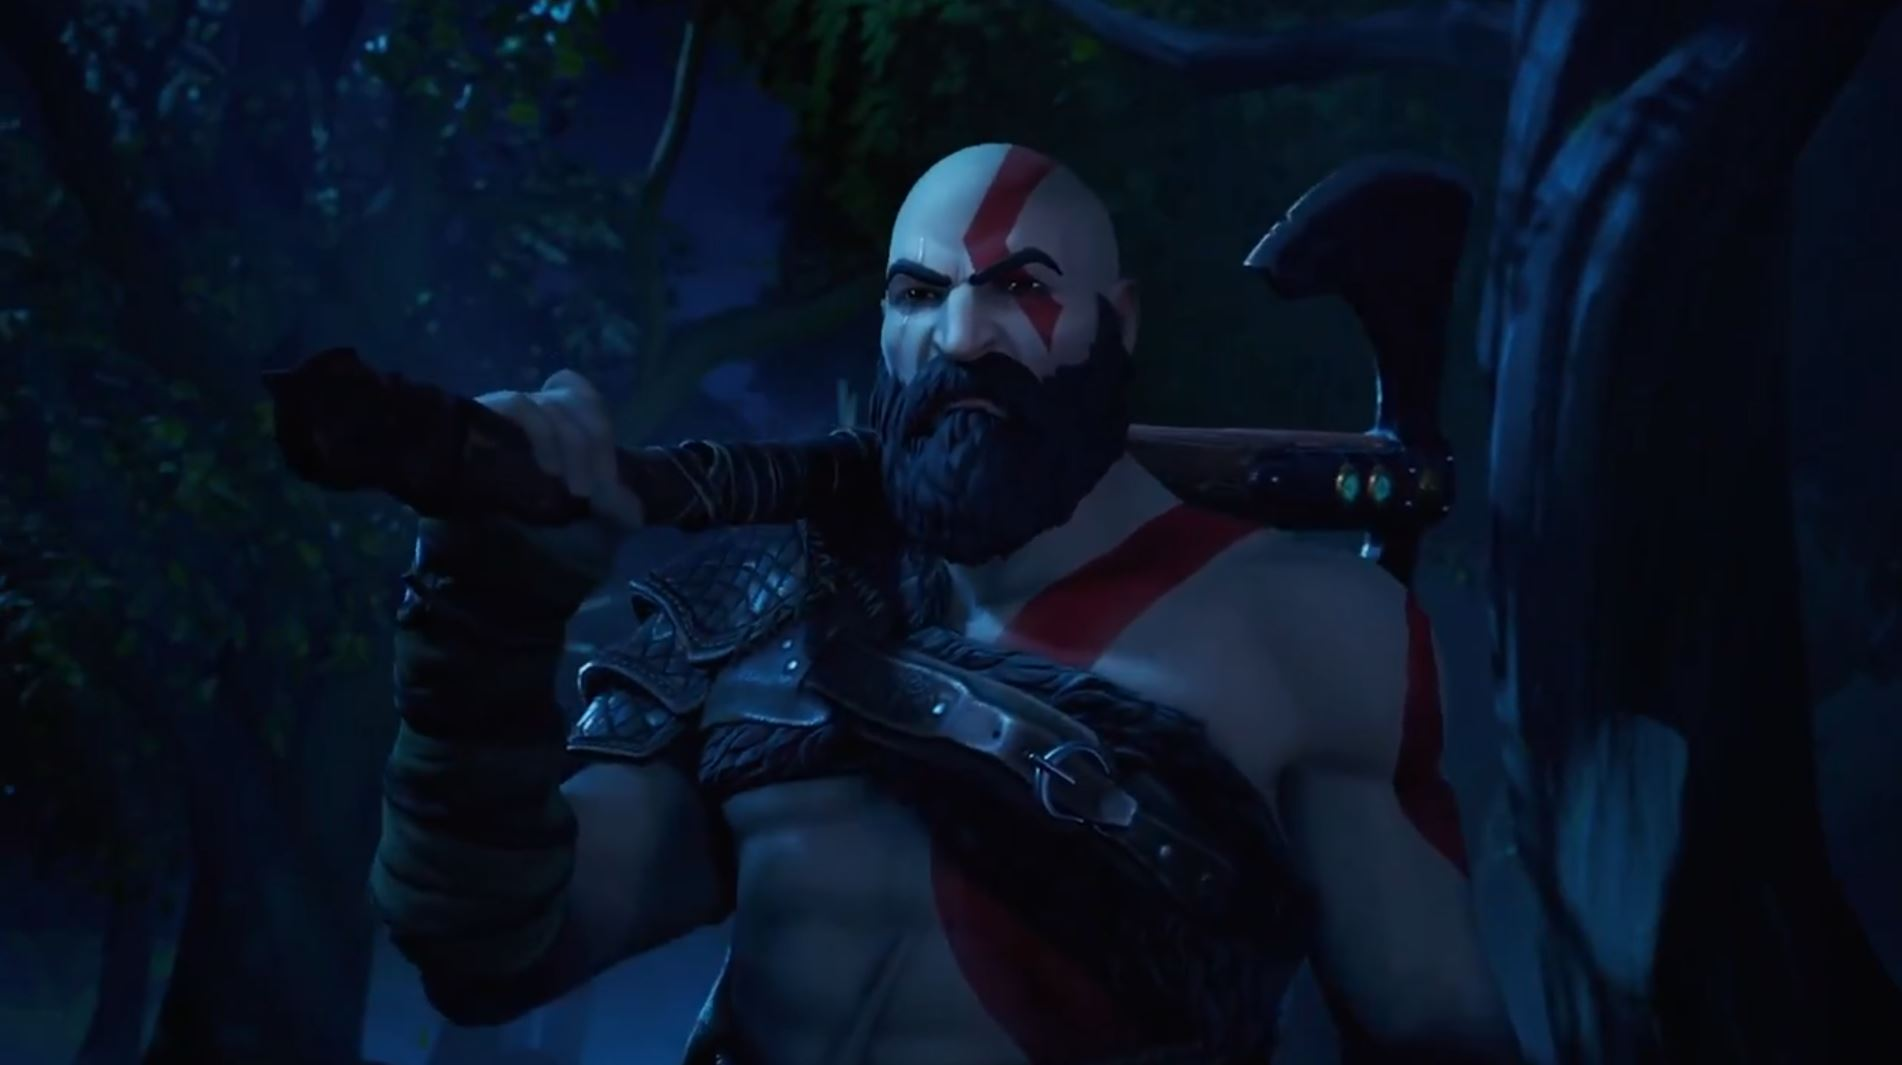 get-your-first-in-game-look-at-the-fortnite-kratos-skin-available-now-in-the-fortnite-item-shop